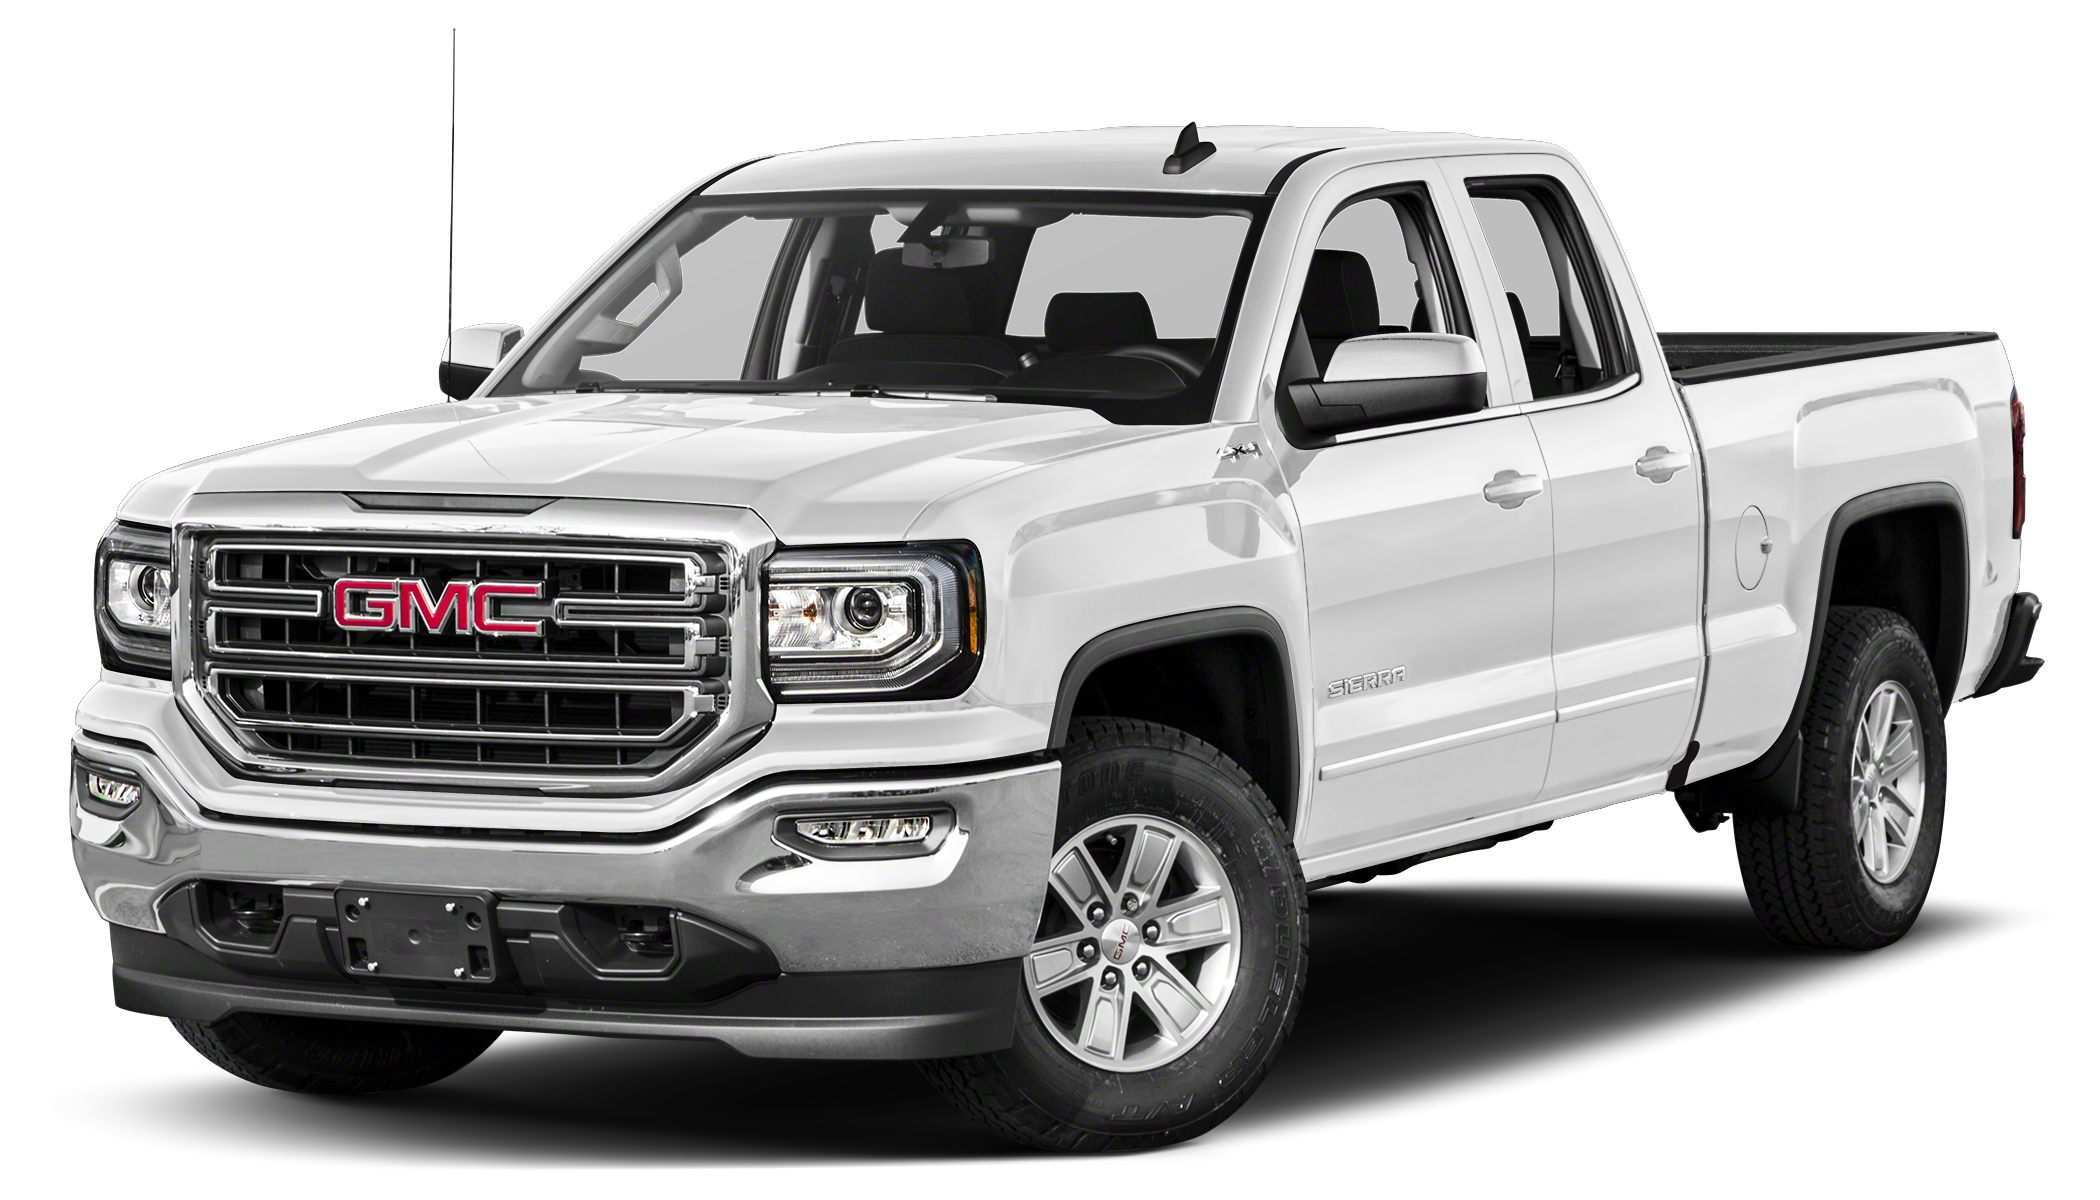 90 Great Best Gmc Regular Cab 2019 Specs Pricing with Best Gmc Regular Cab 2019 Specs